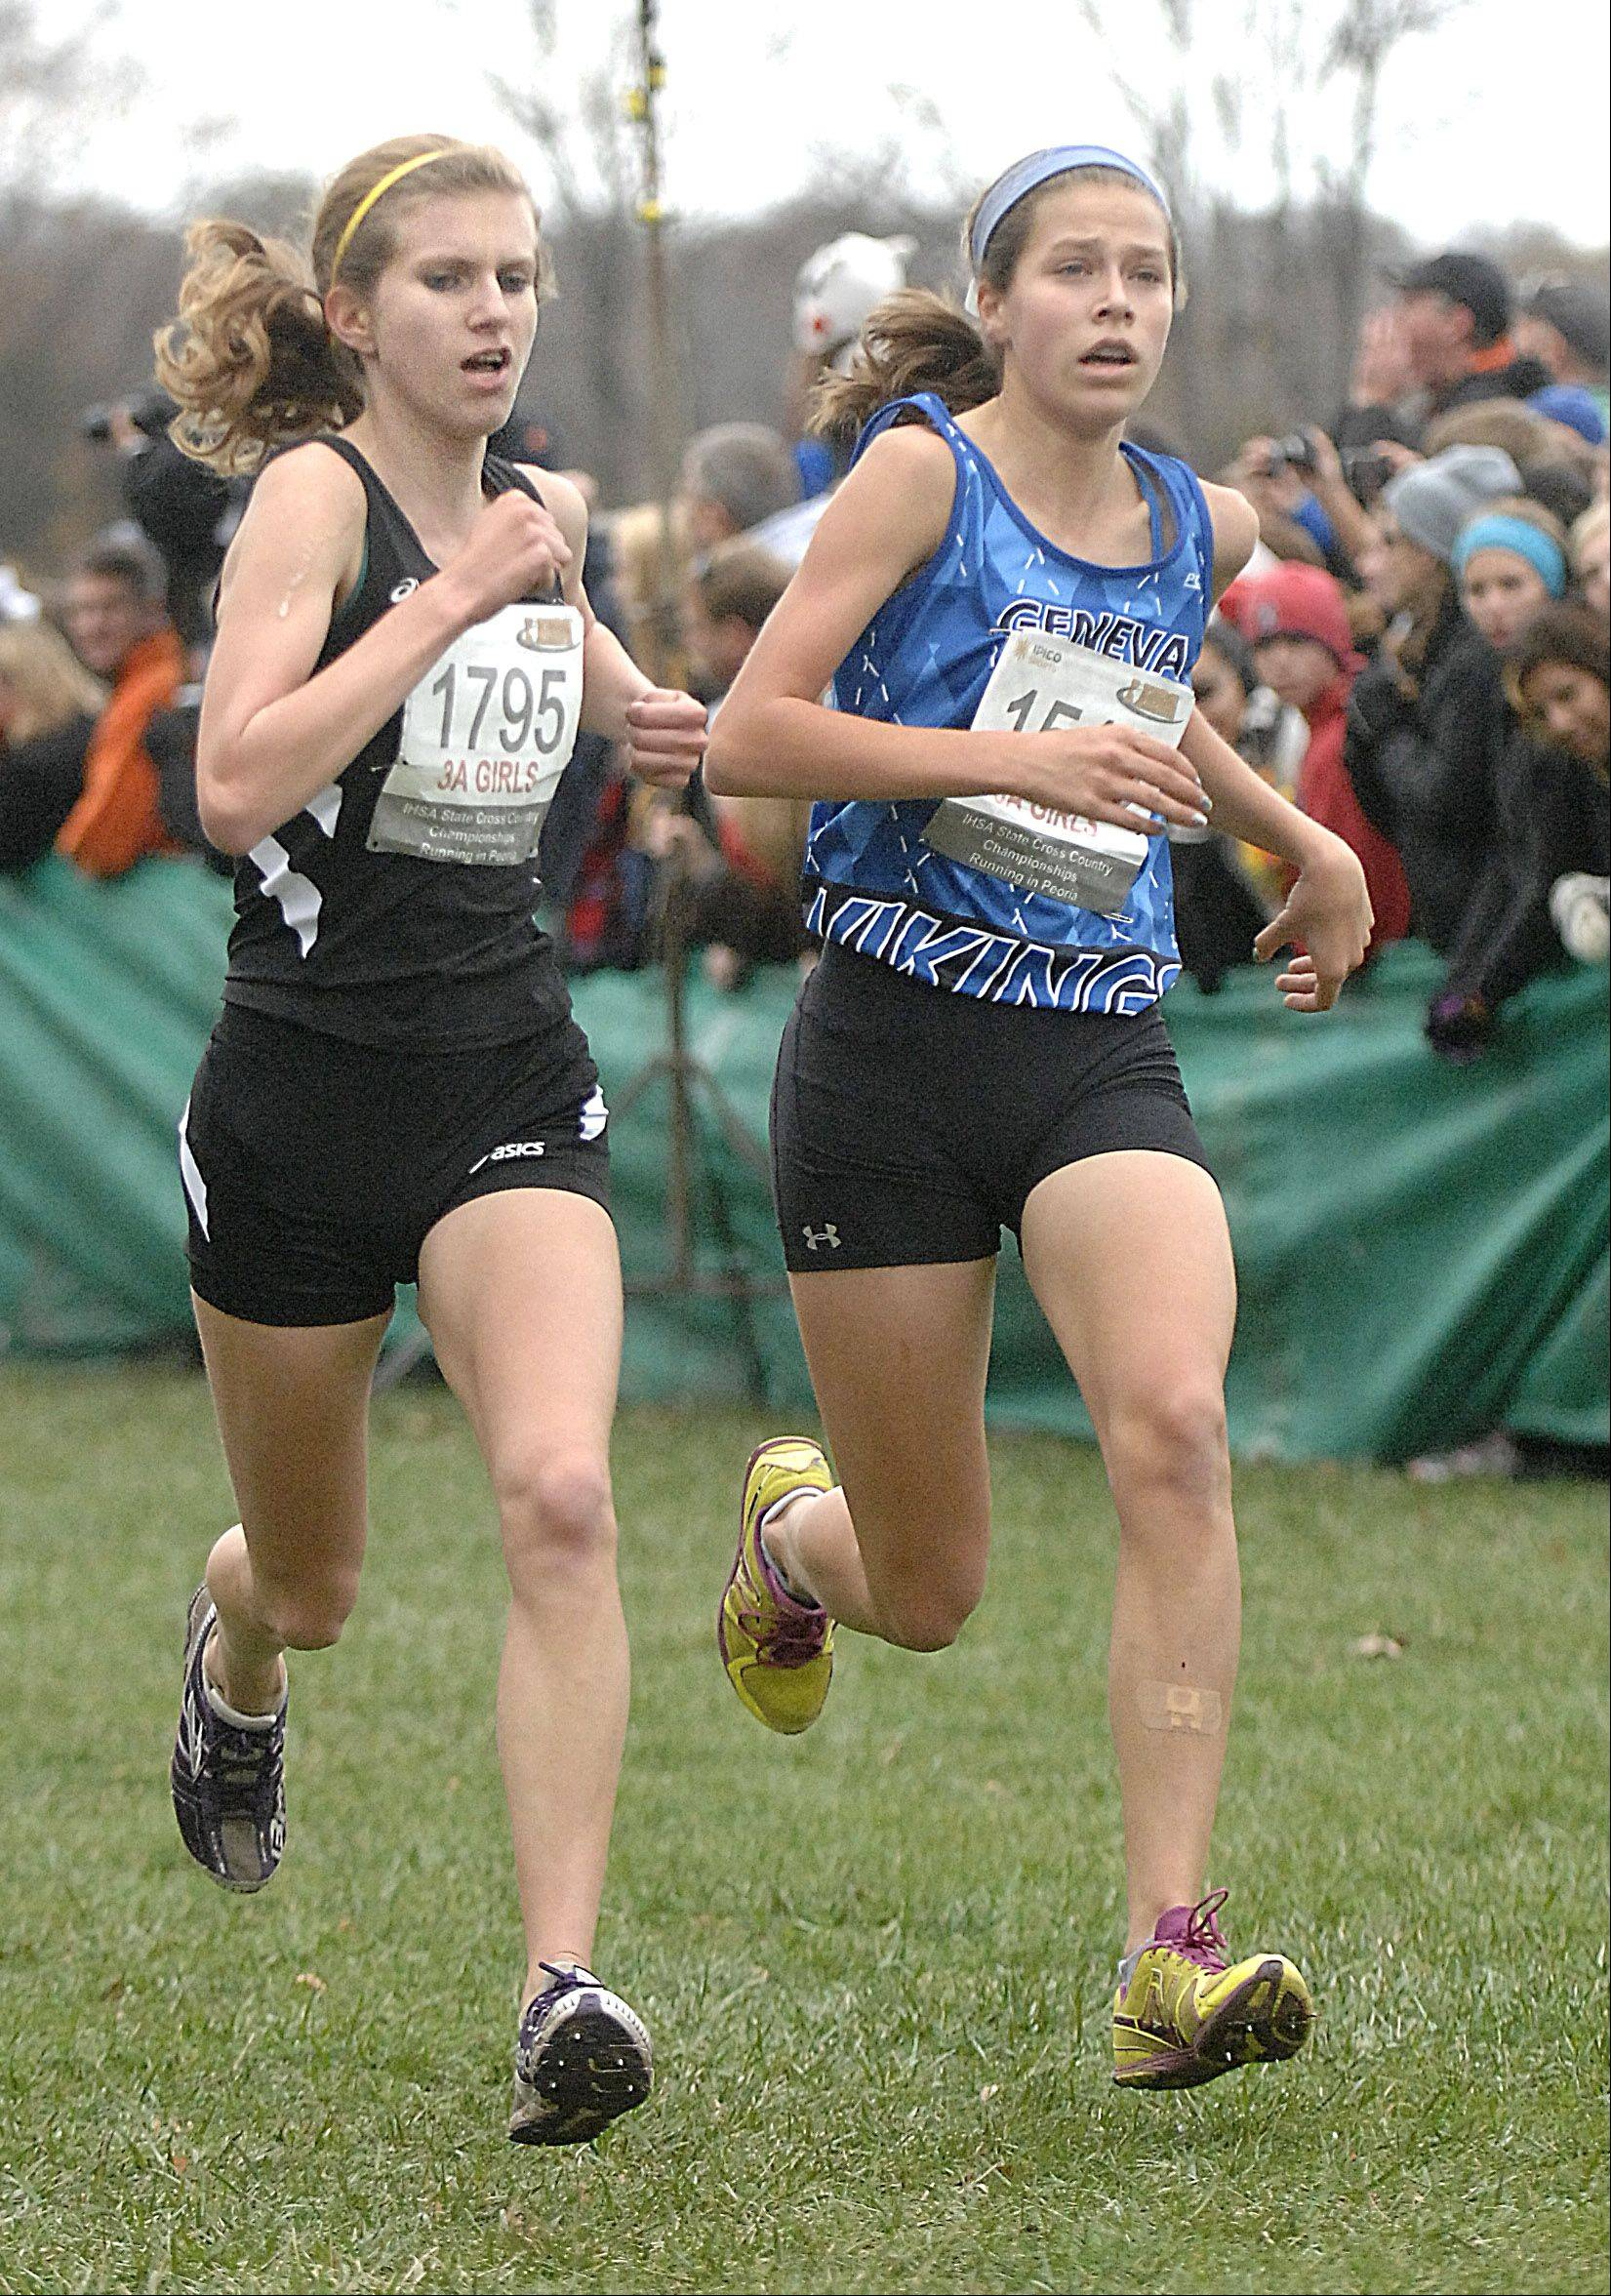 Metea Valley's Kendall Cast and Geneva's McKenzie Altmayer battle to the finish line in the state cross country 3A final in Peoria on Saturday, November 3. Girls took 38th and 36th place respectively.